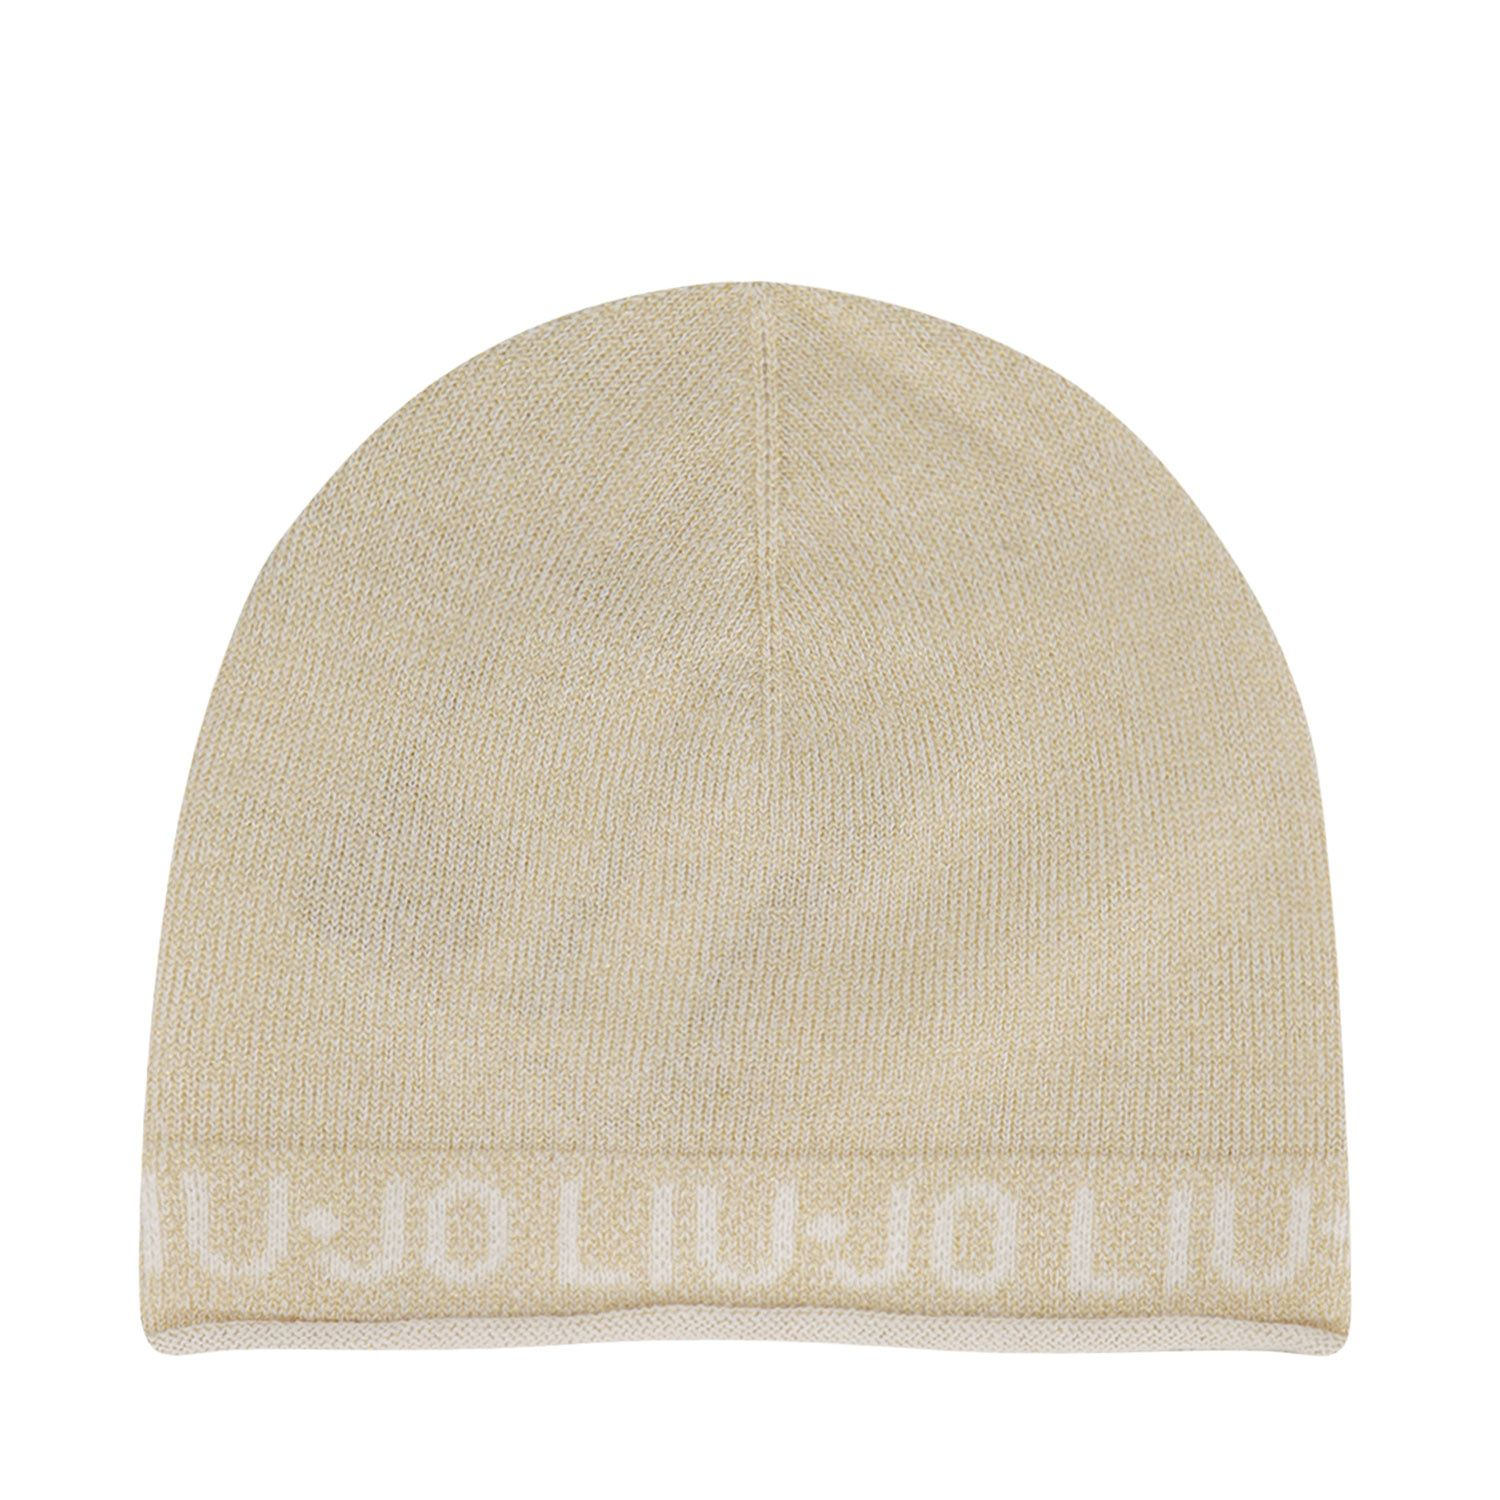 Picture of Liu Jo HF0025 baby hat gold